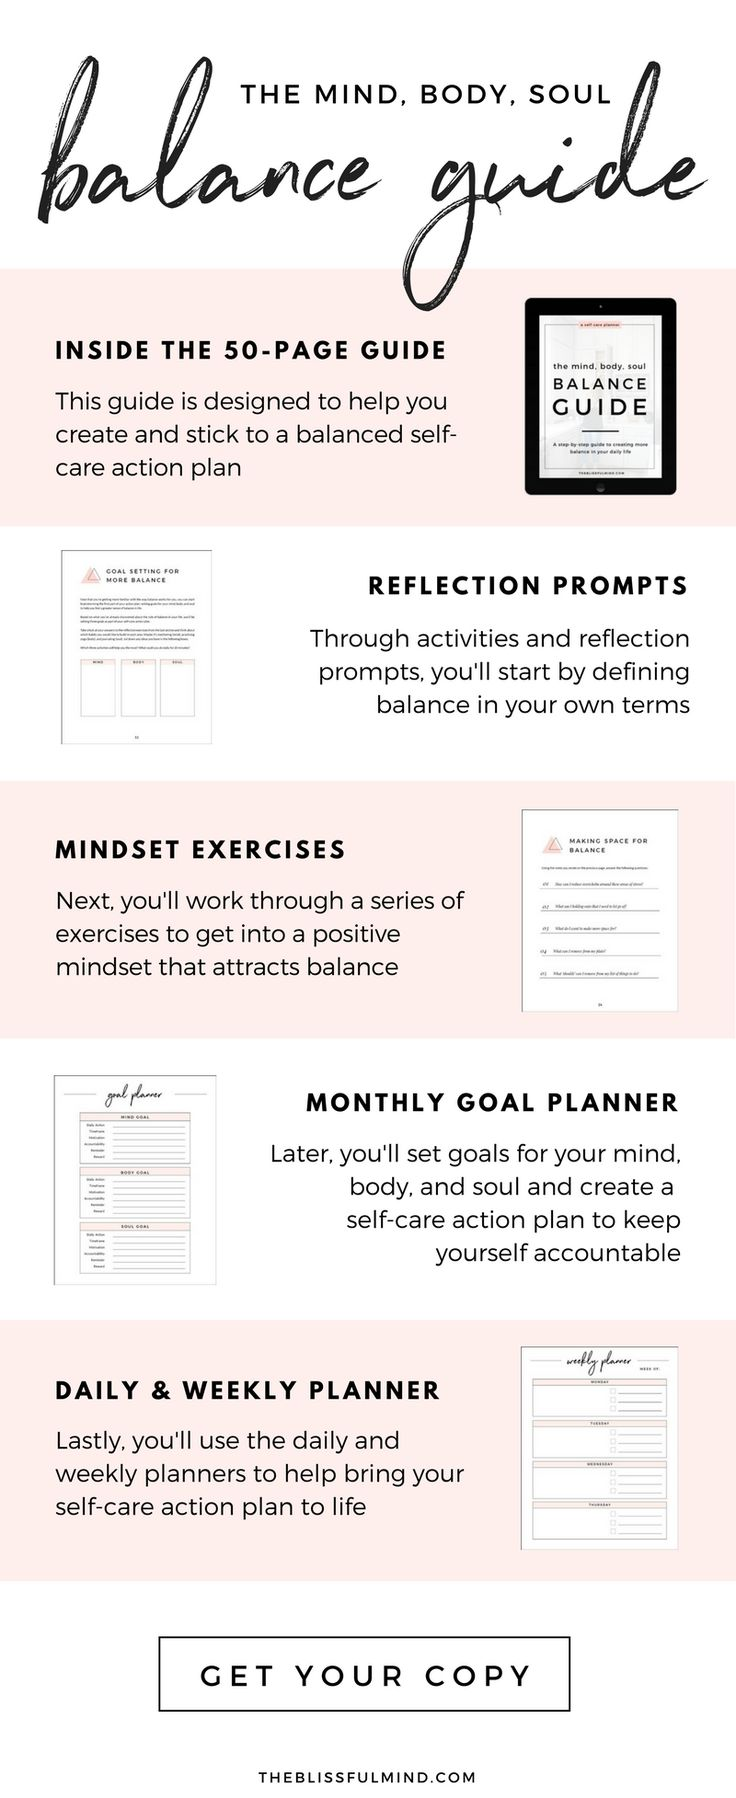 The Ultimate Self-Care Guide. 50 pages of prompts, exercises, and reflections to help you get back into balance!